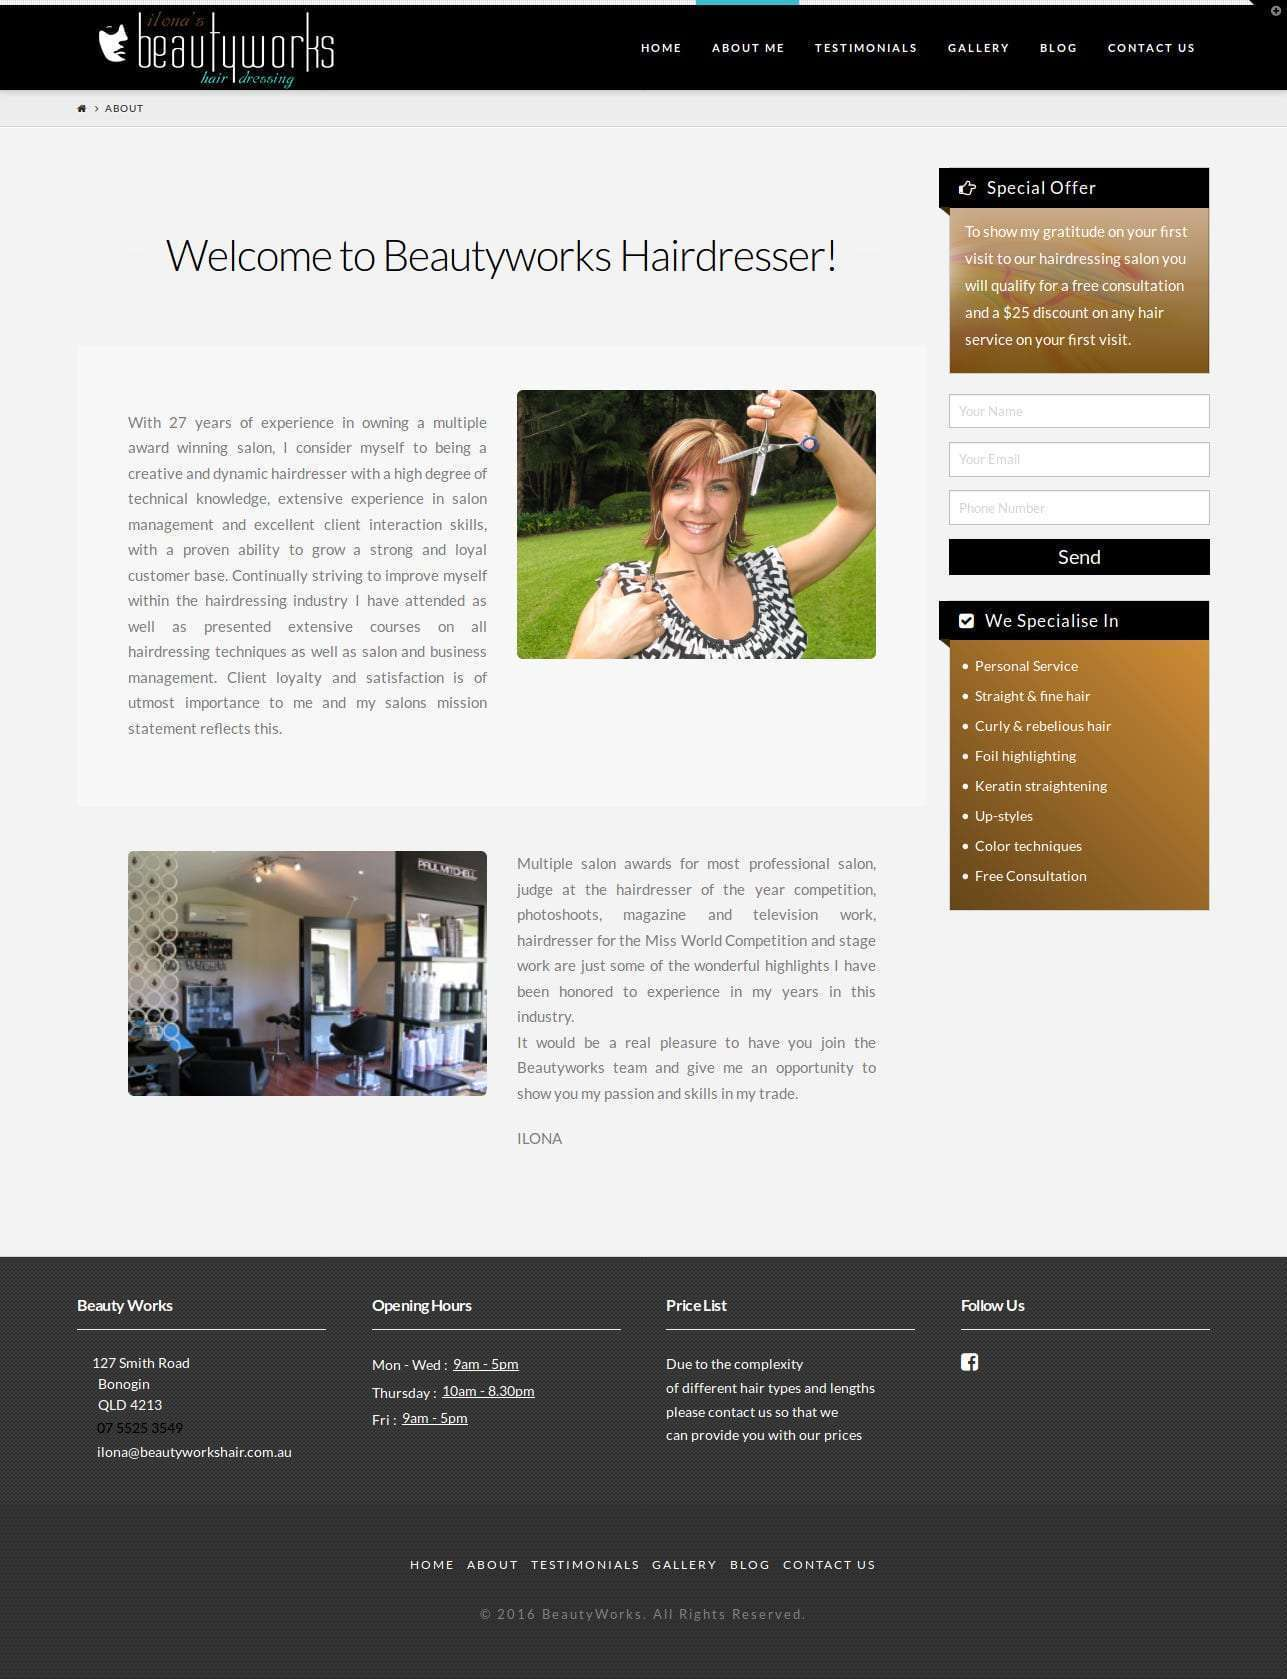 Beautyworks About Us